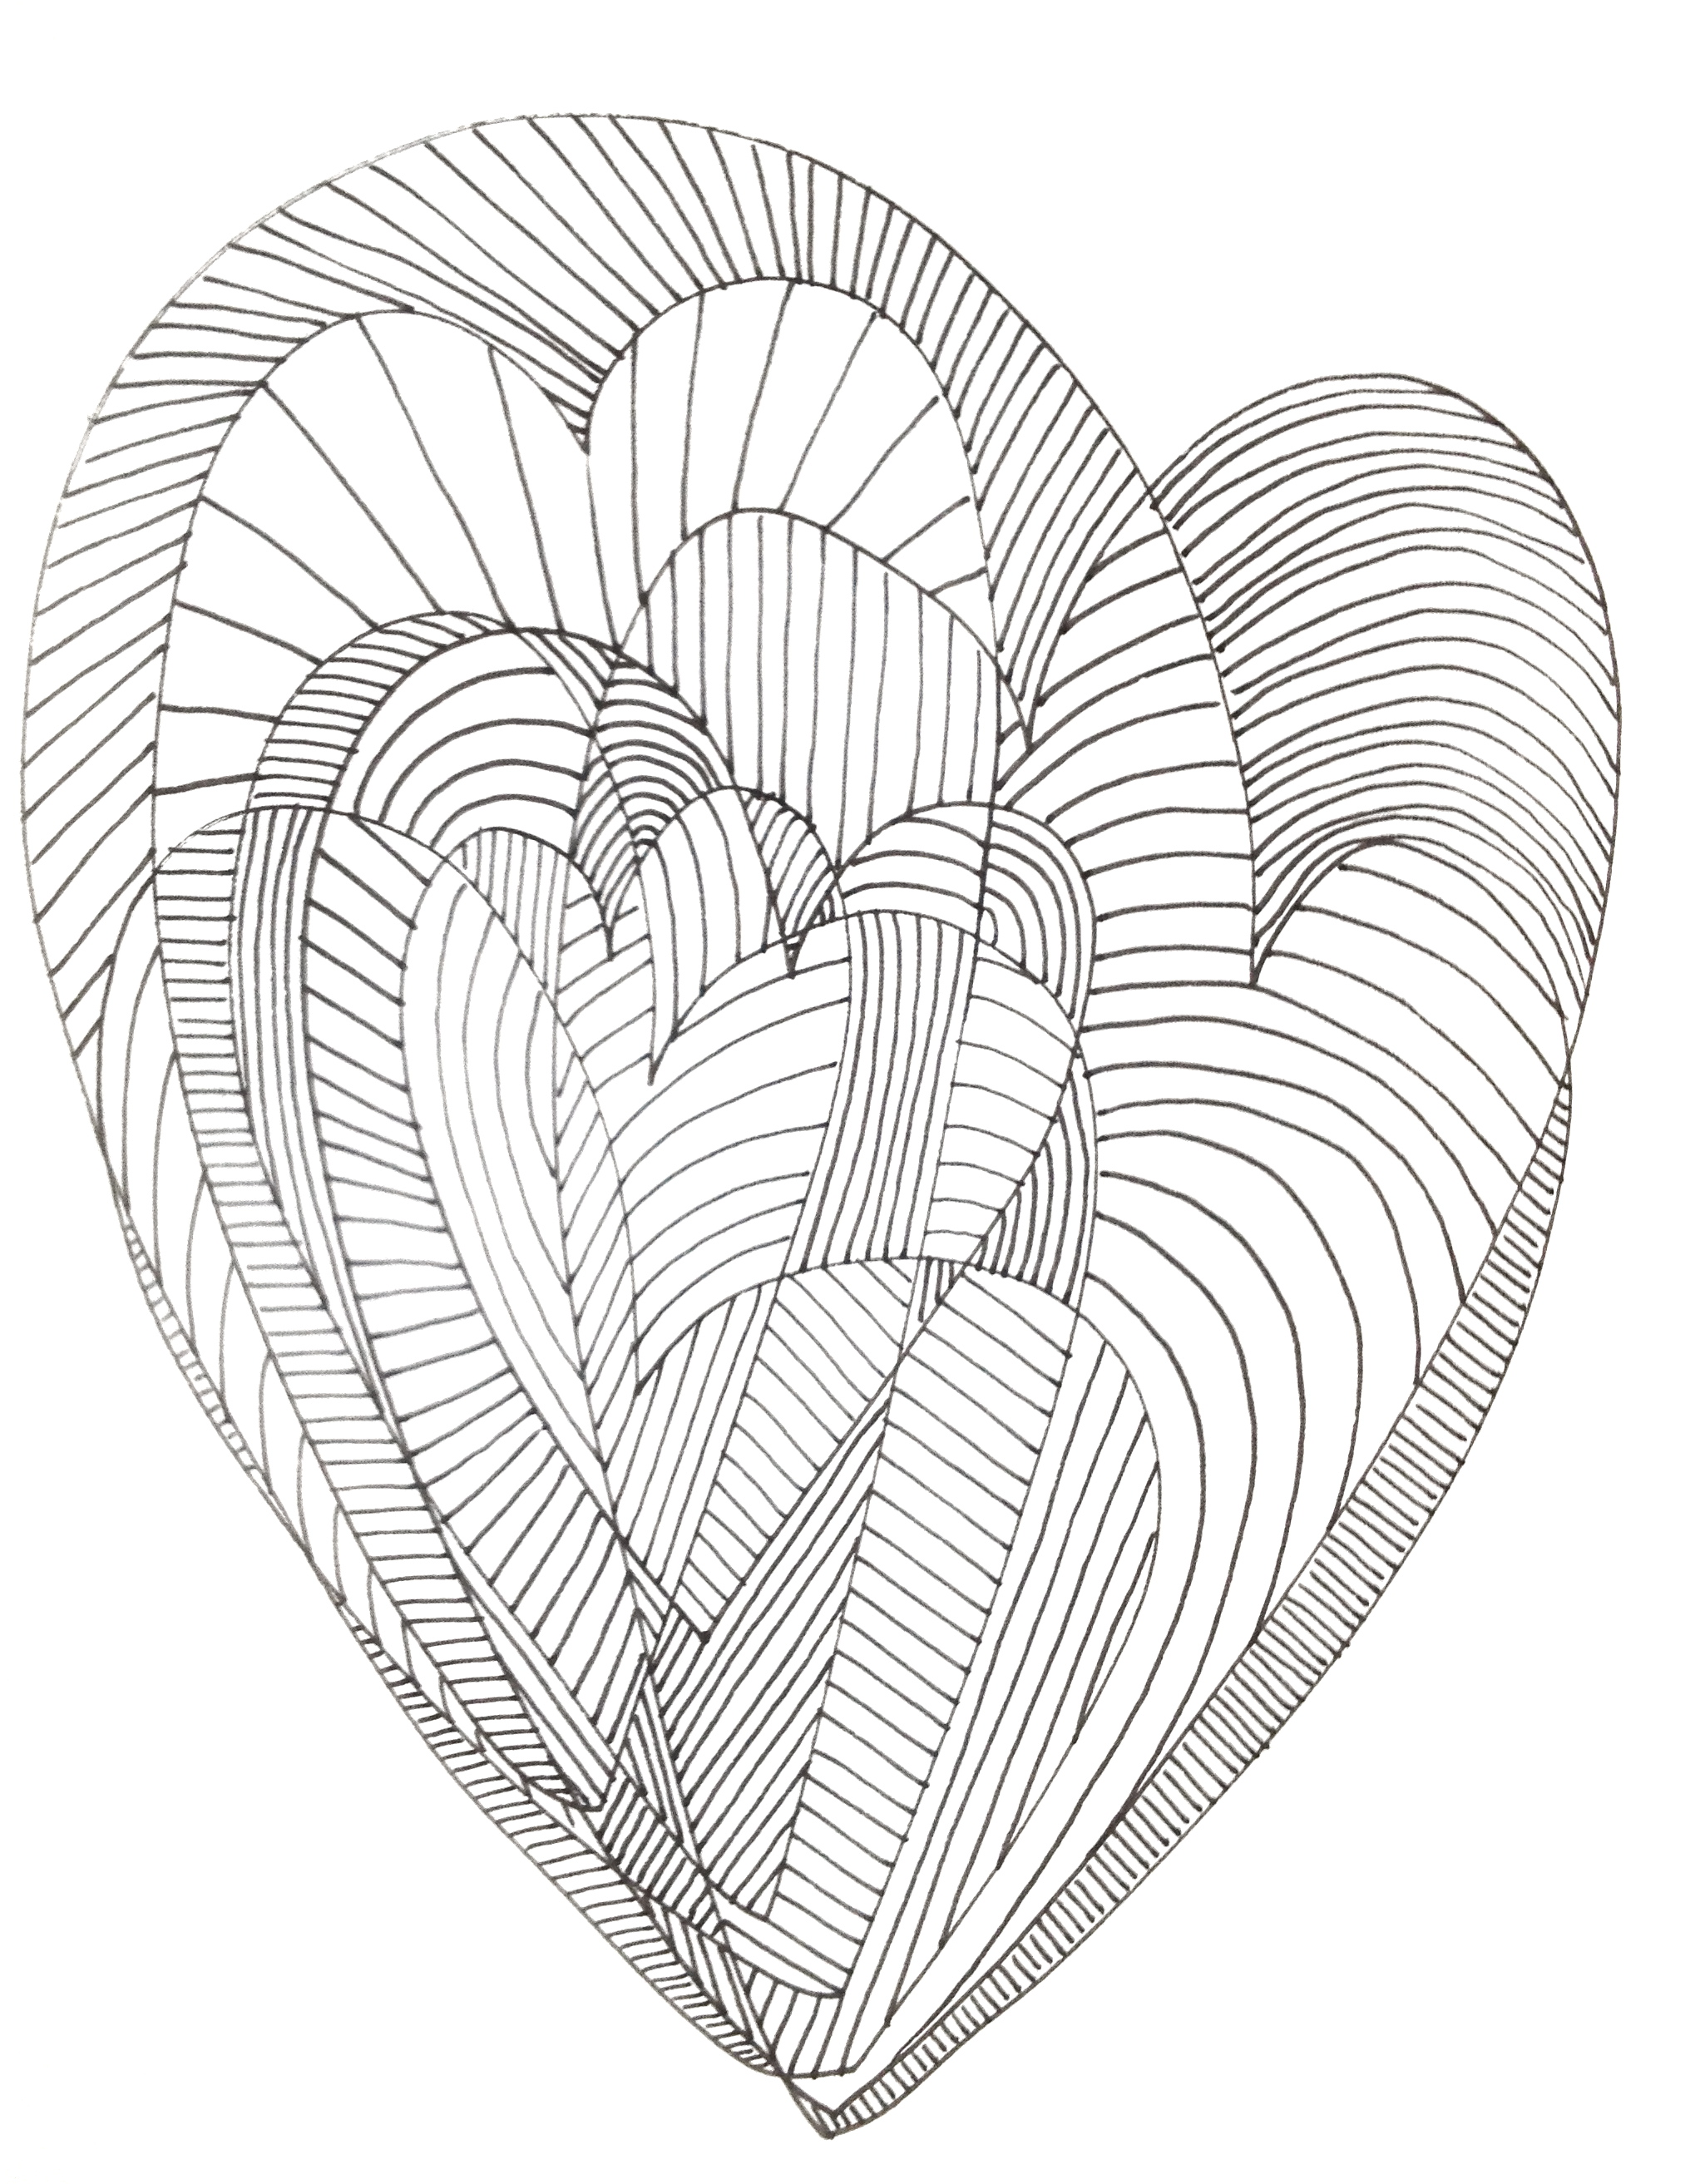 Detailed Heart Drawing at GetDrawings | Free download